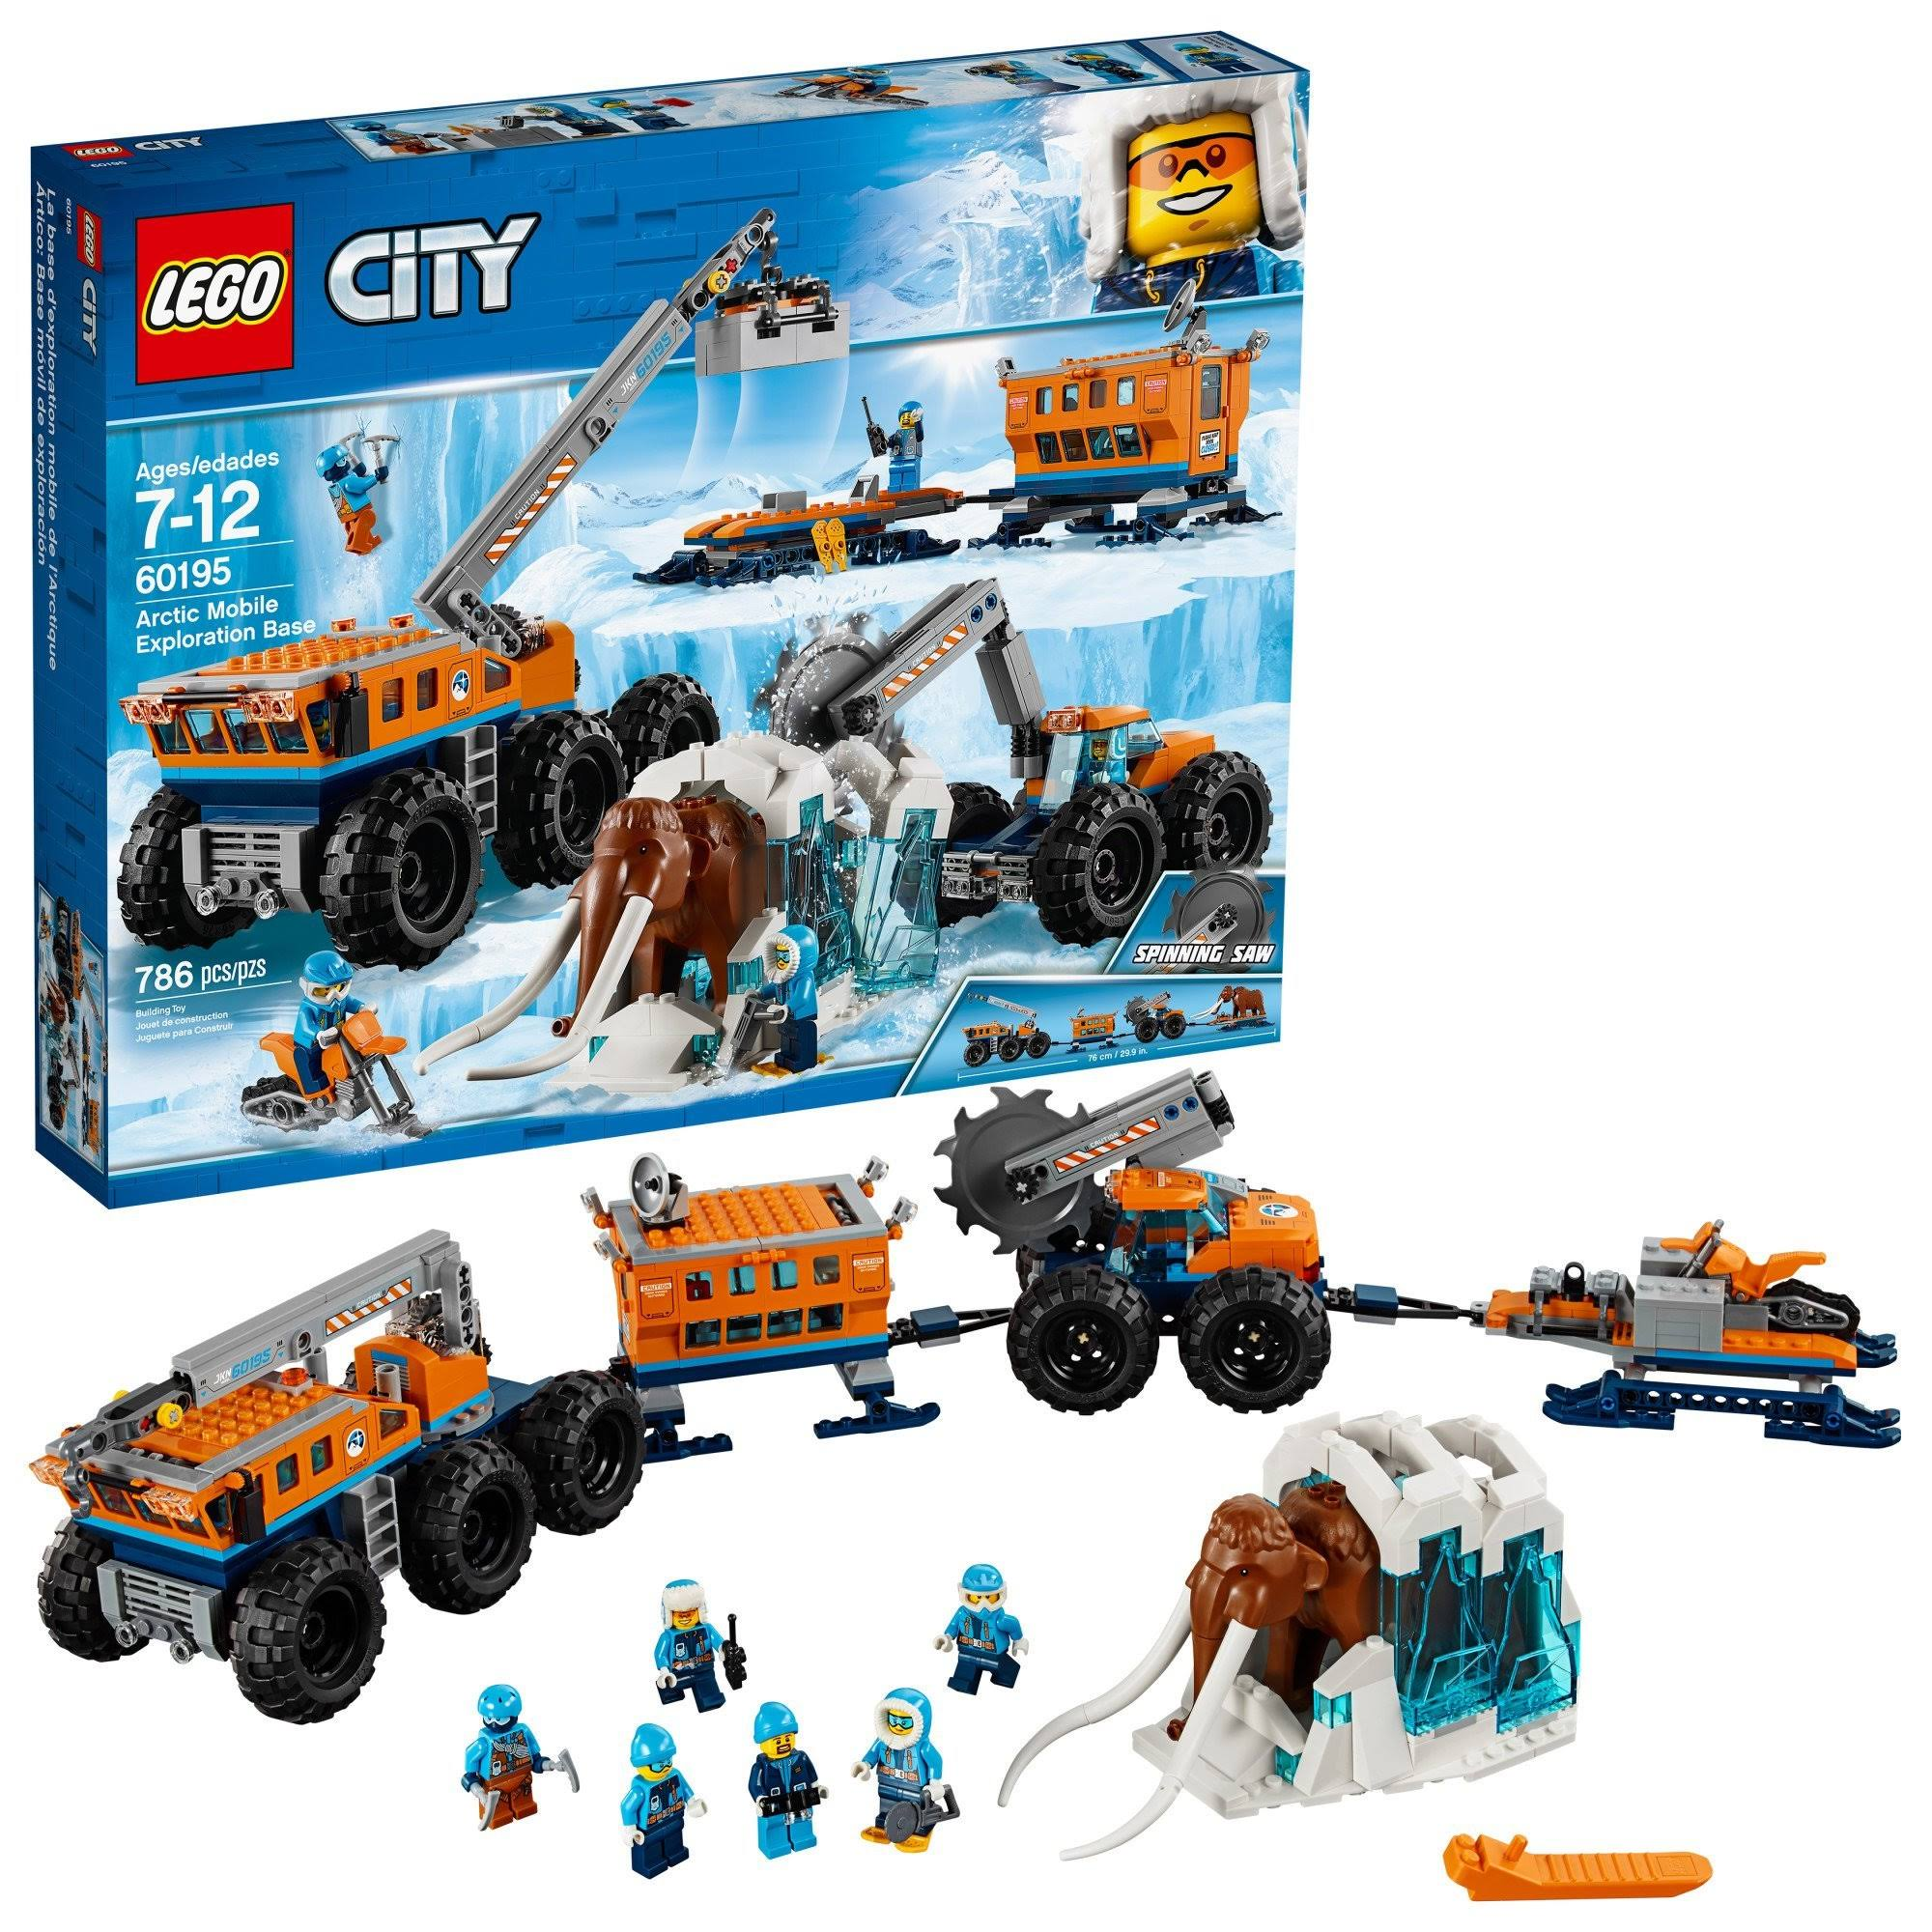 Lego City Arctic Mobile Exploration Base Building Kit - 786pcs